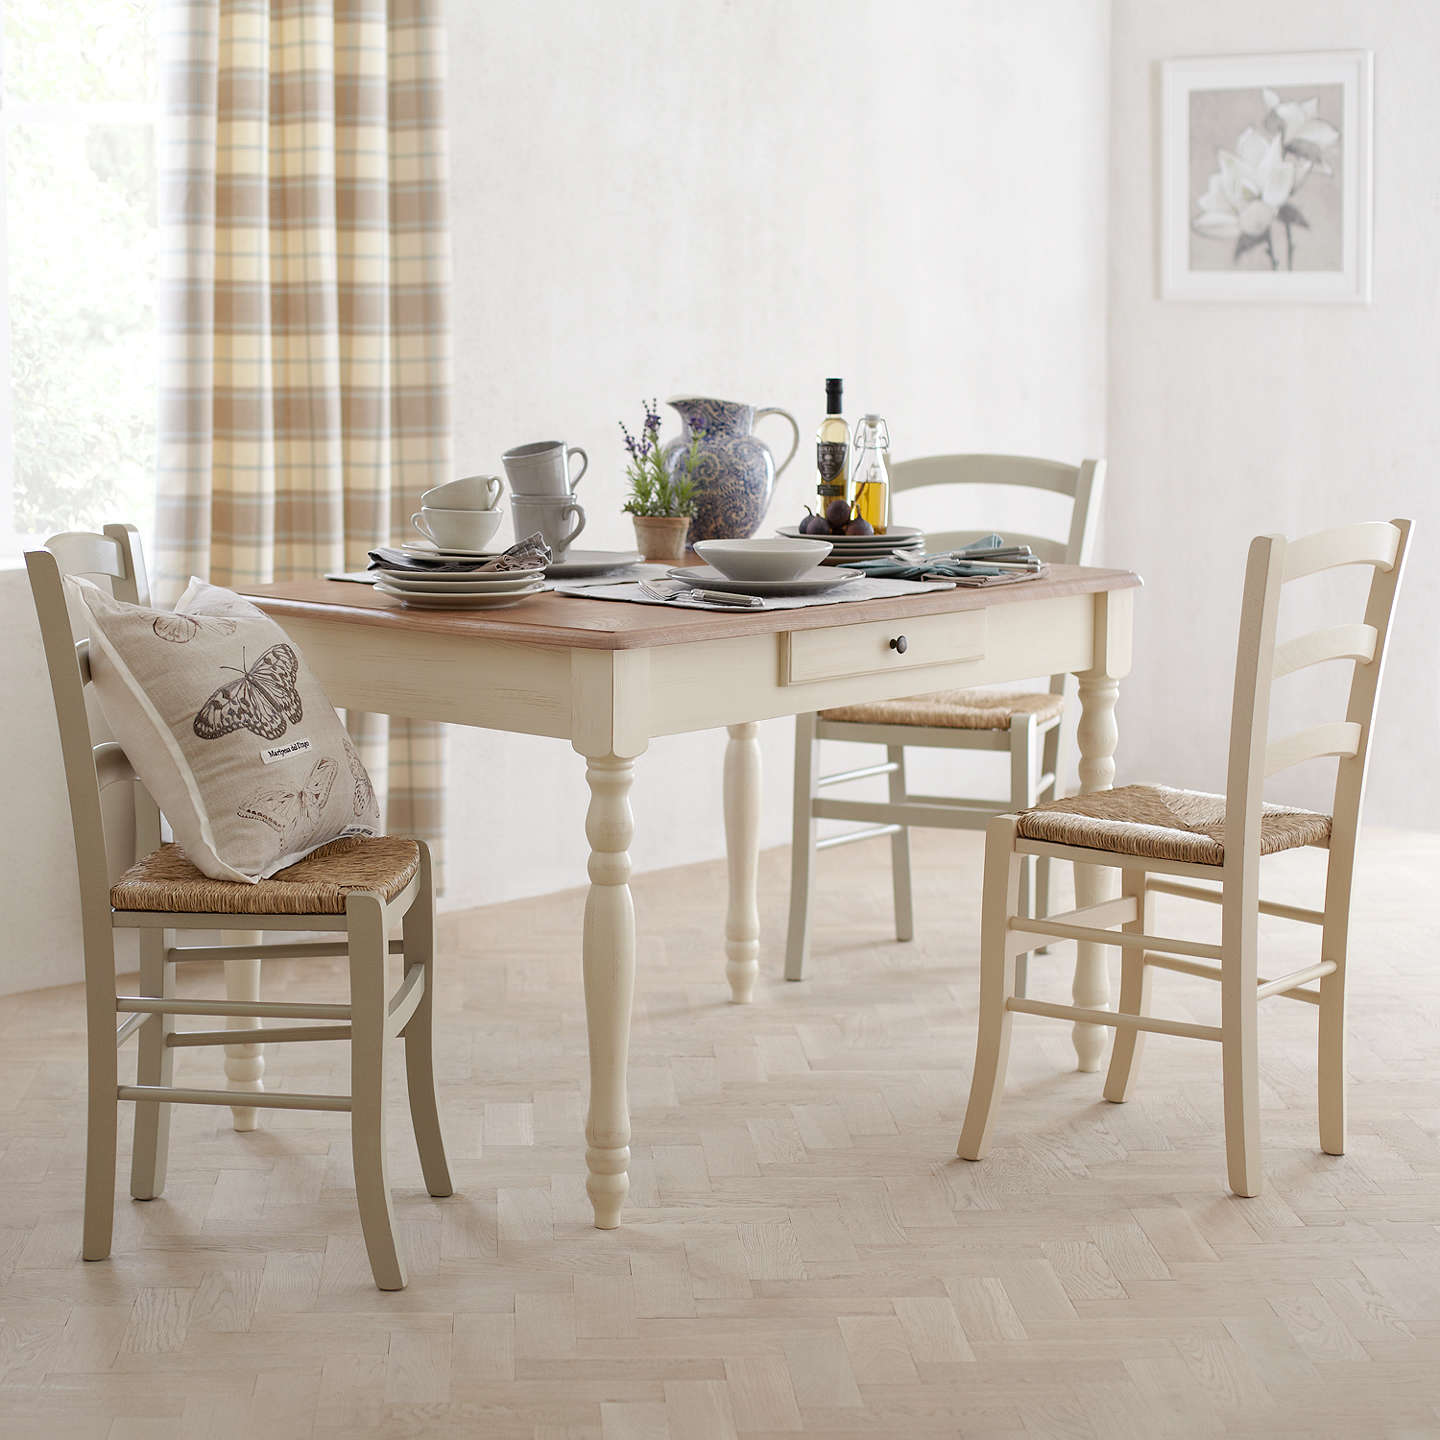 John lewis firenze 6 seater dining table at john lewis for Best place to buy a kitchen table